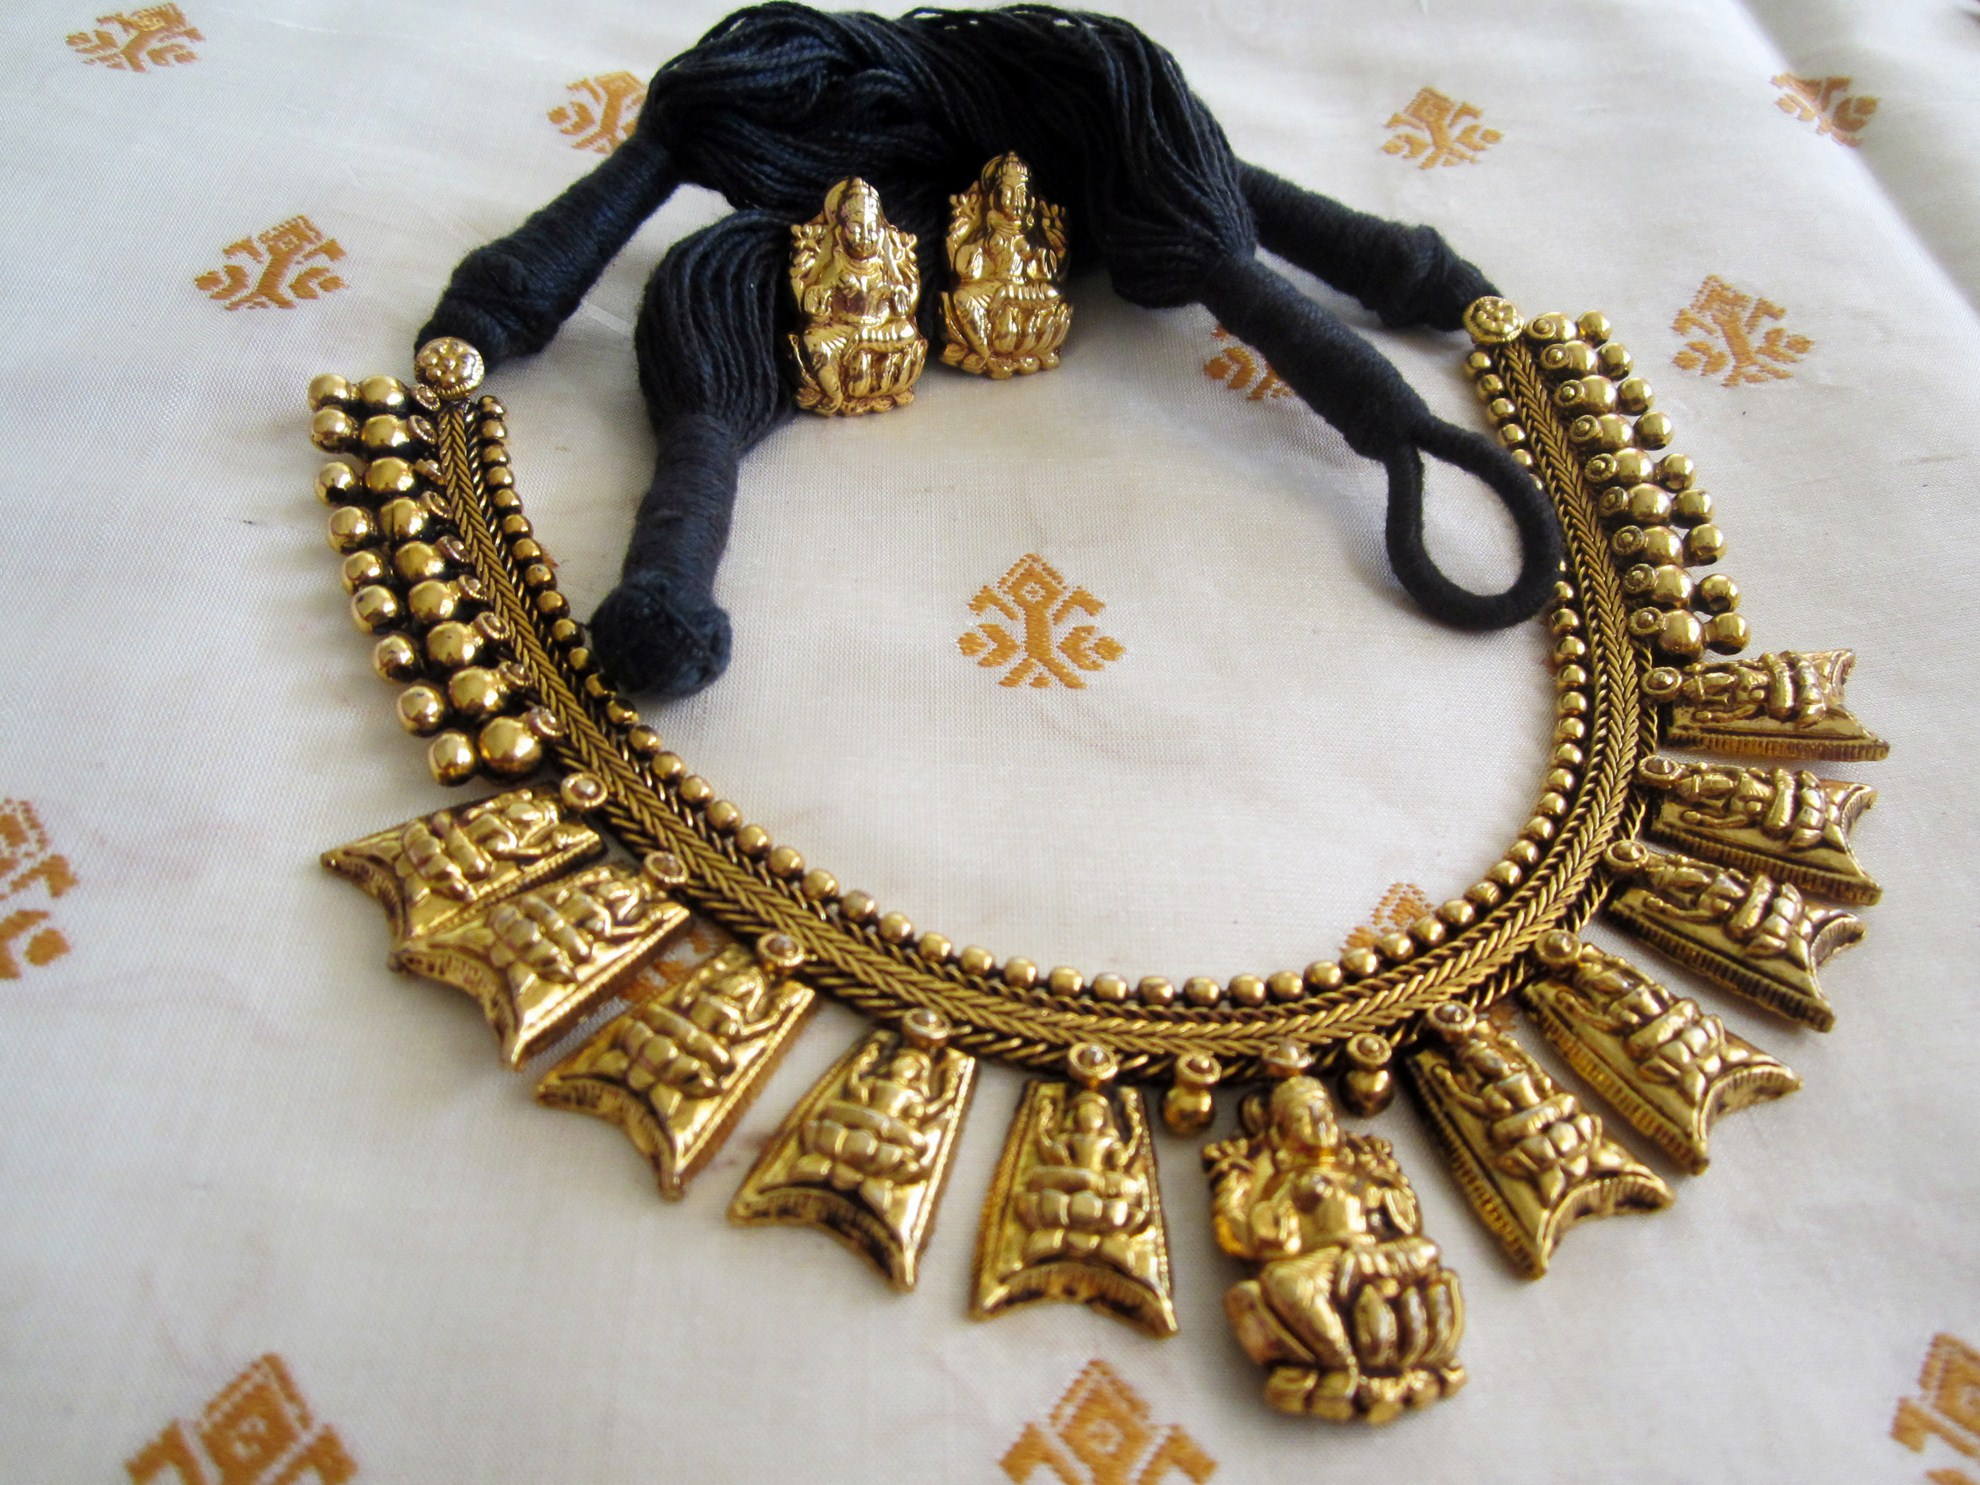 pearl meenakari adrajewels necklace antique studded with